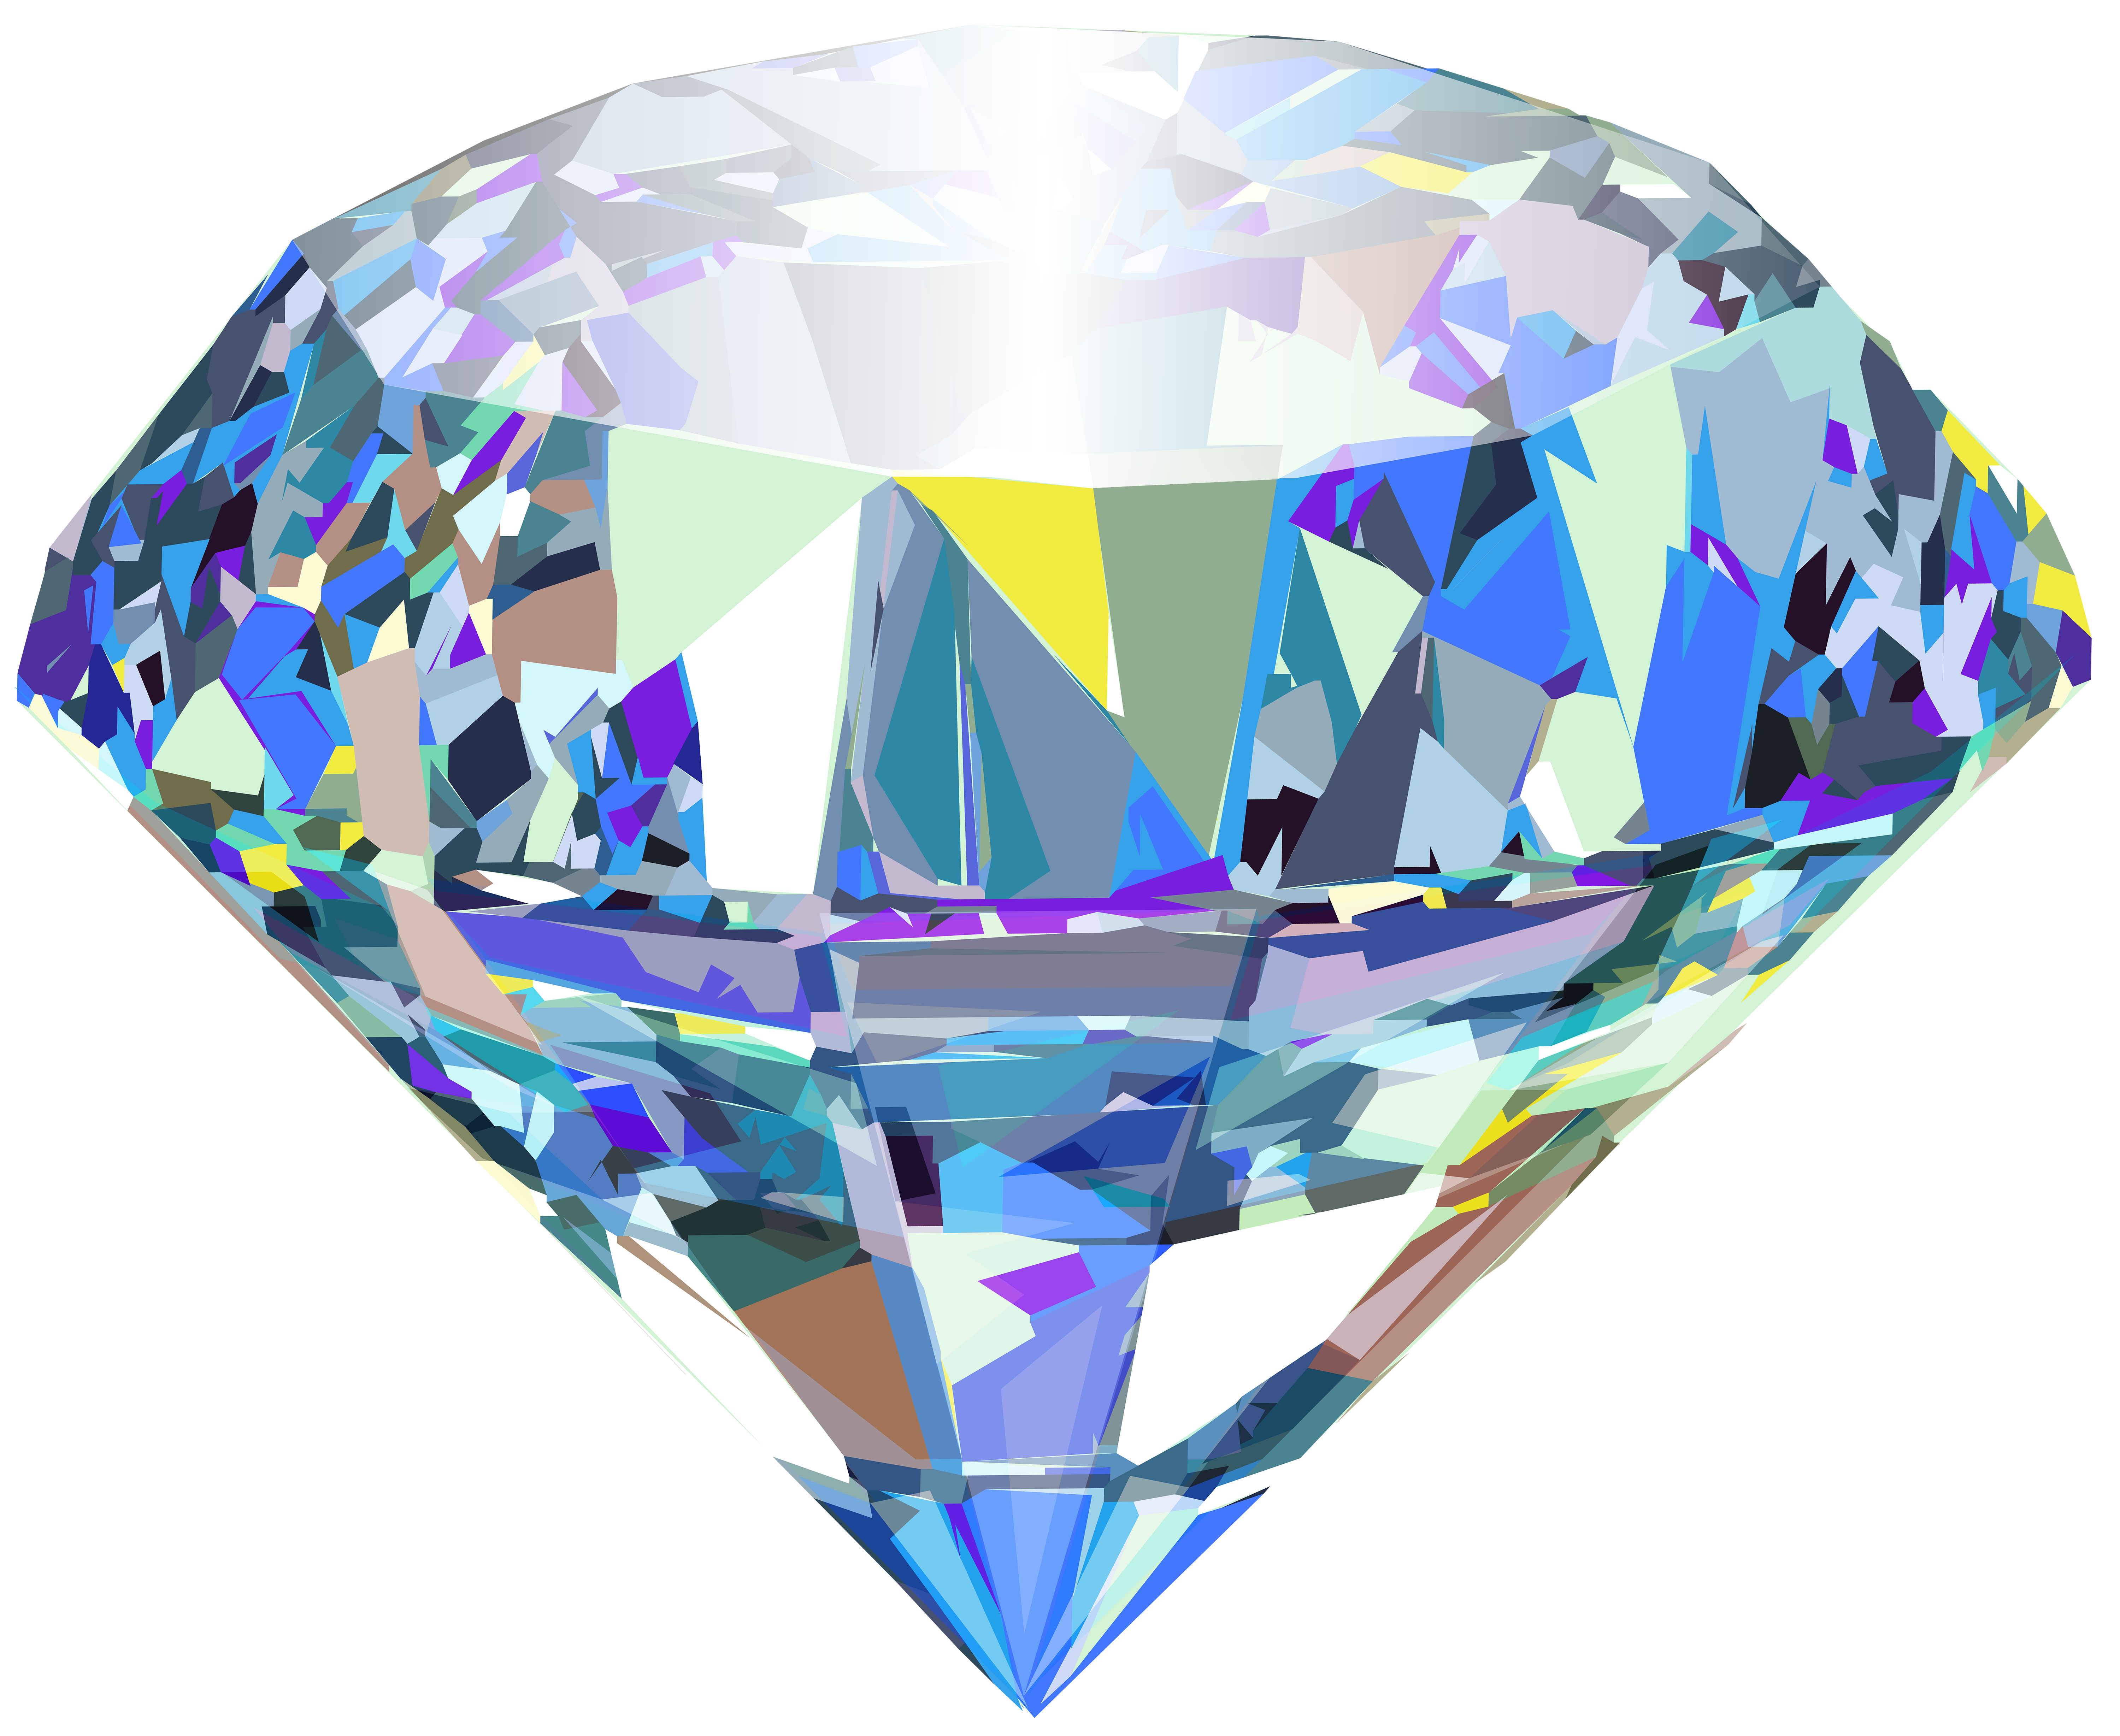 Diamond clipart crystal  Gallery Transparent size full